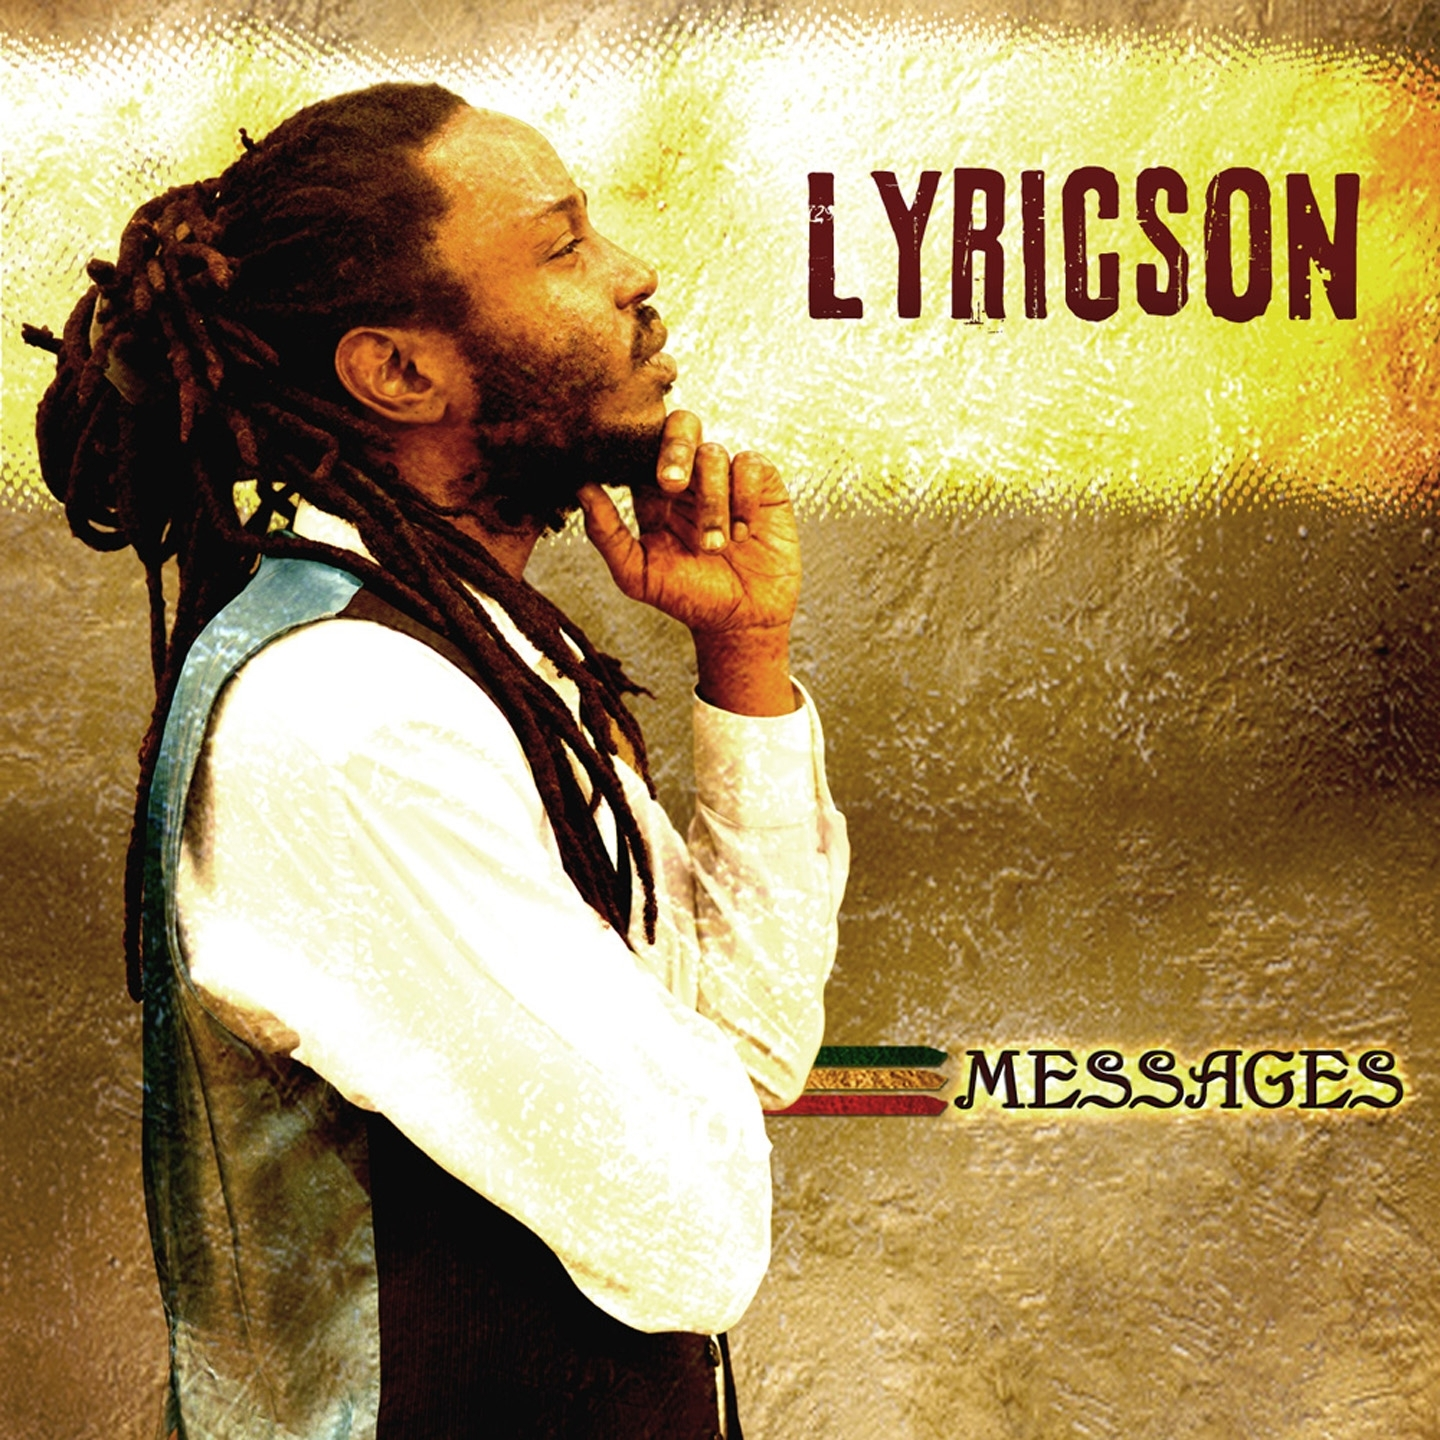 Lyricson « Messages »